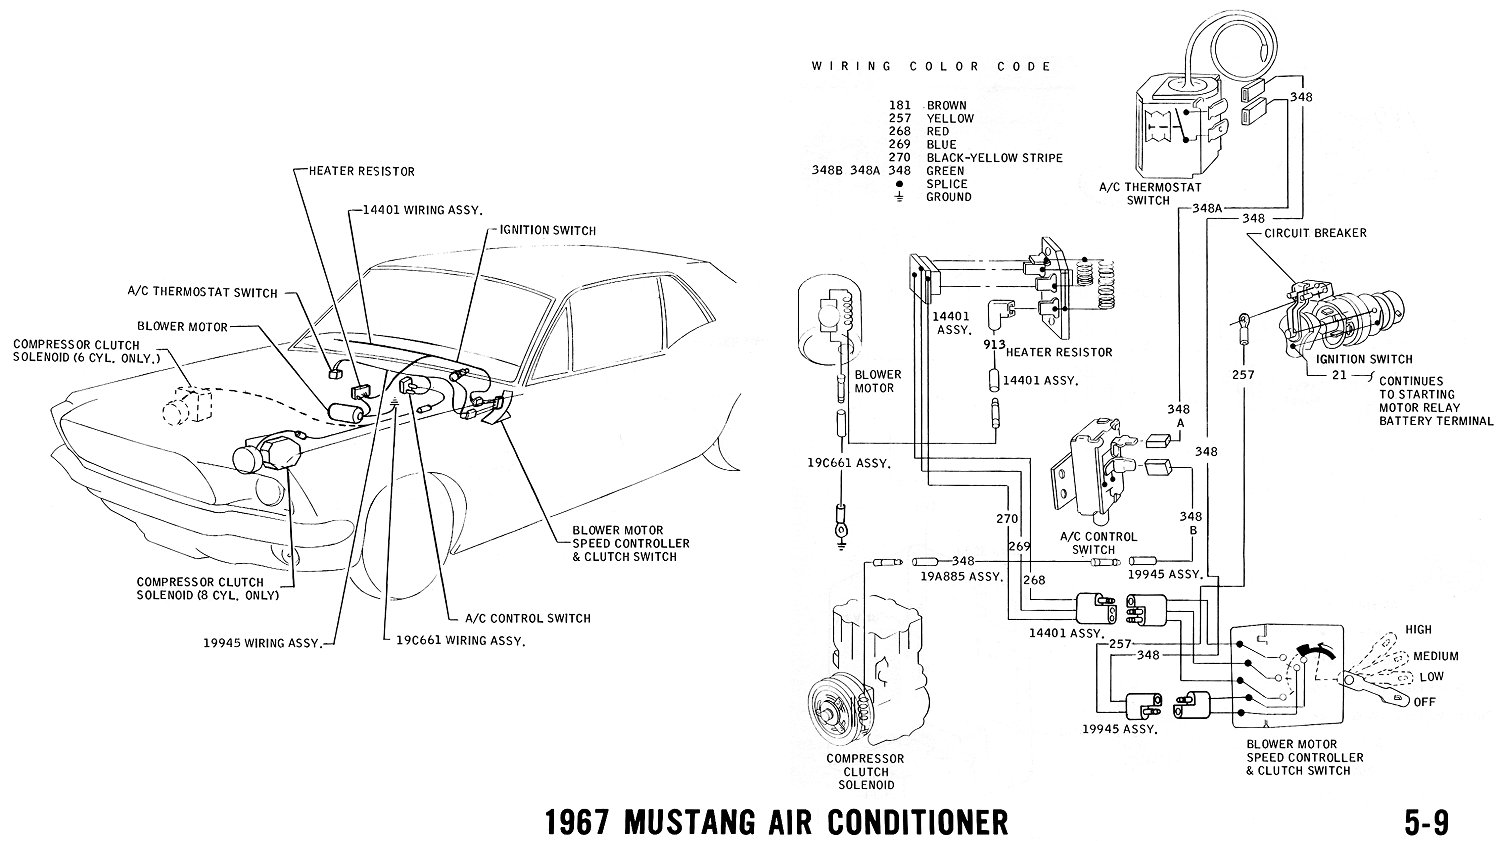 headlamp wiring diagram with 1967 Mustang Wiring And Vacuum Diagrams on 1986 Nissan 300zx Wiring Harness also Yamaha Ybr 125 Electrical System Wiring together with T14843434 Witch relay works headlights 98 ford as well Schematics i together with 7 Pin Trailer Harness.